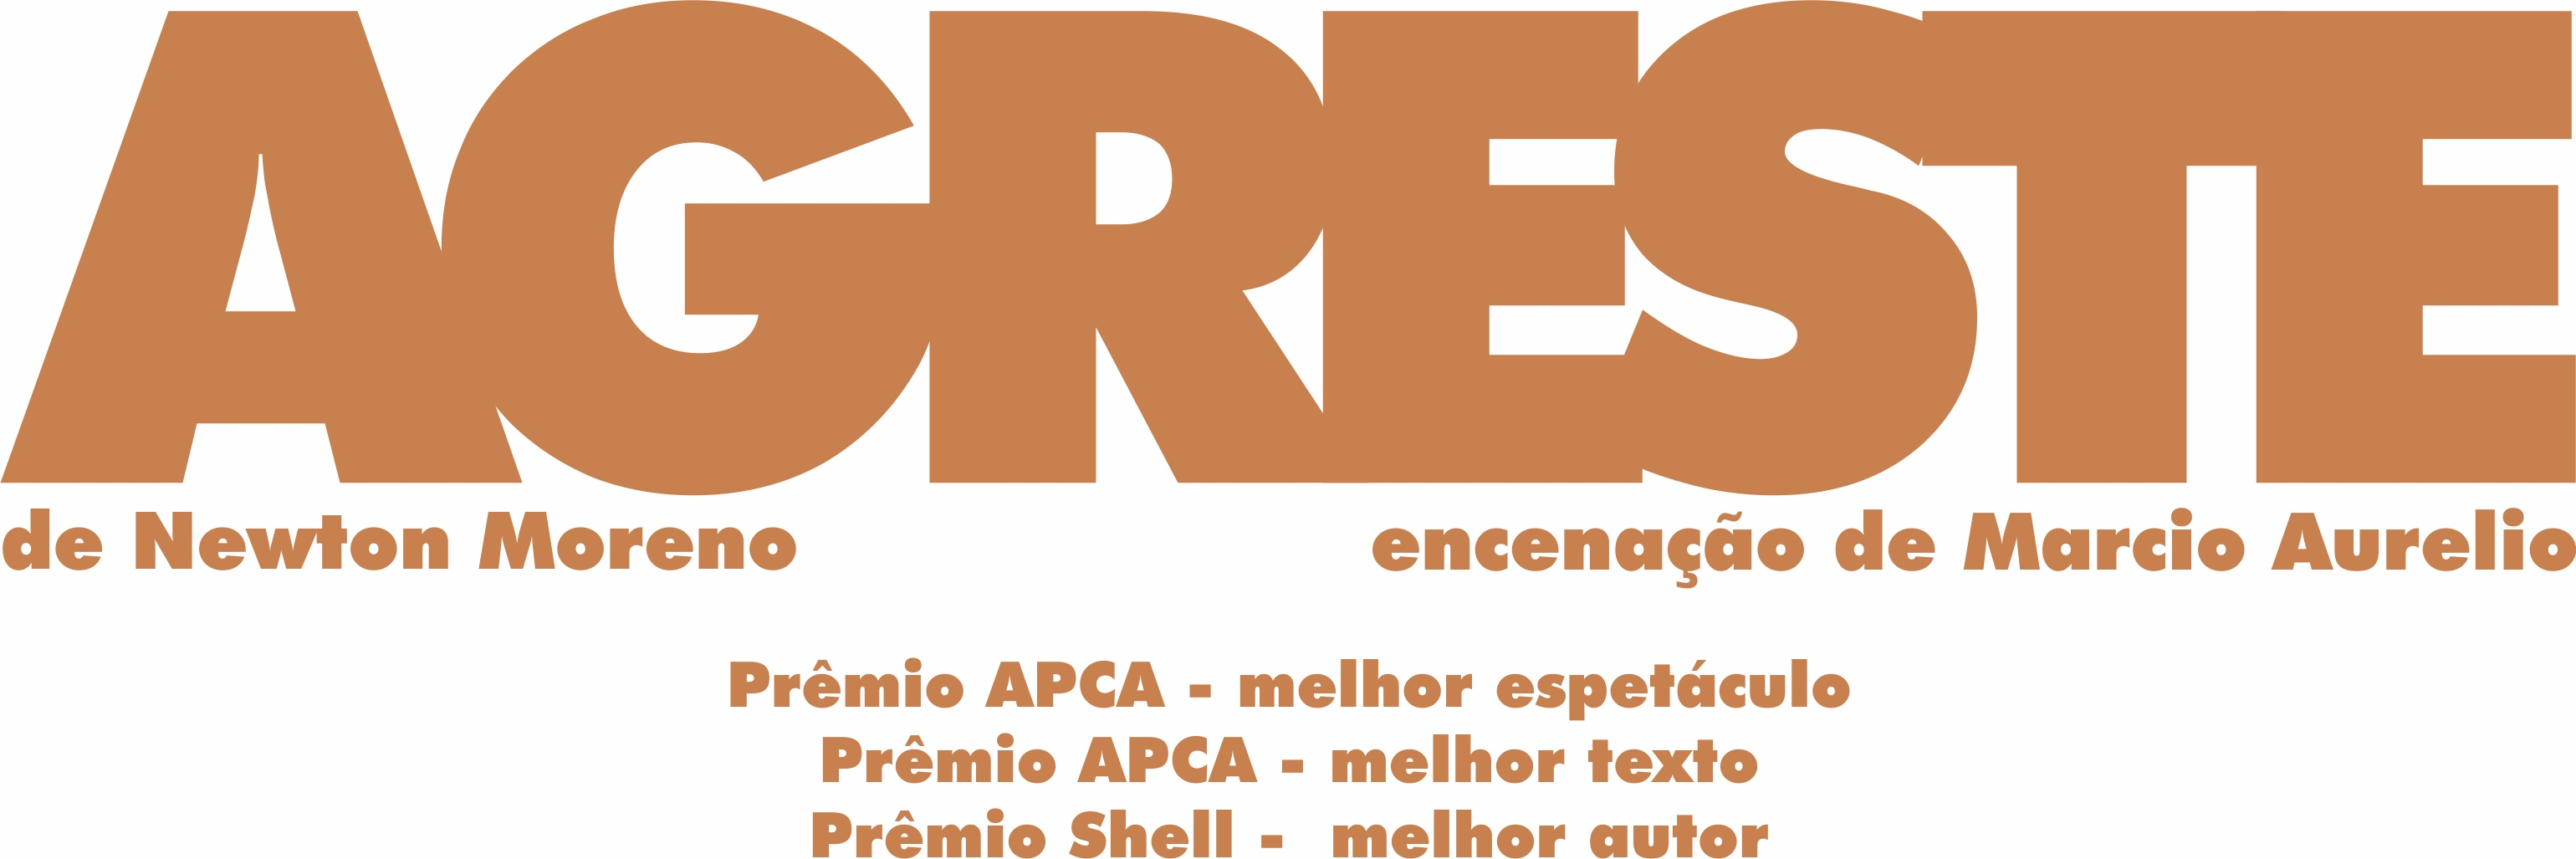 logo_agreste